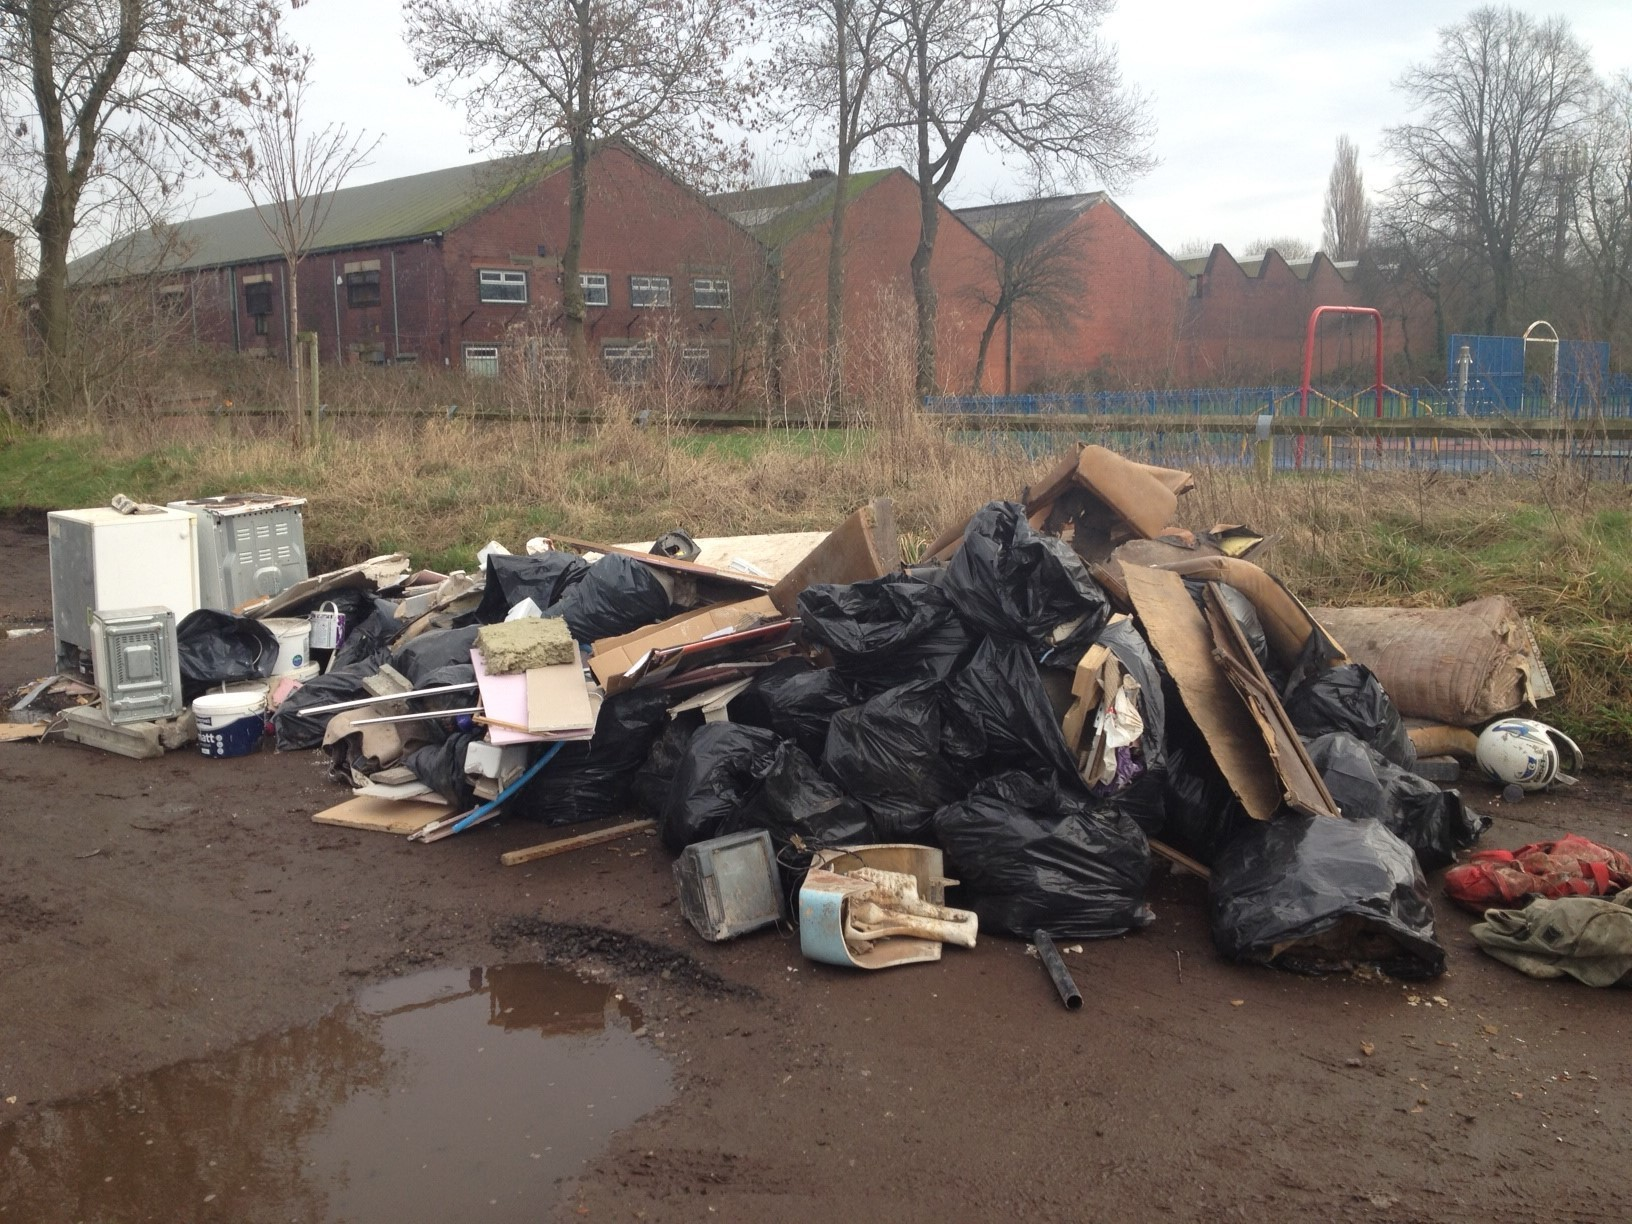 Hambleton District Council has approved fresh fly-tipping enforcement actions